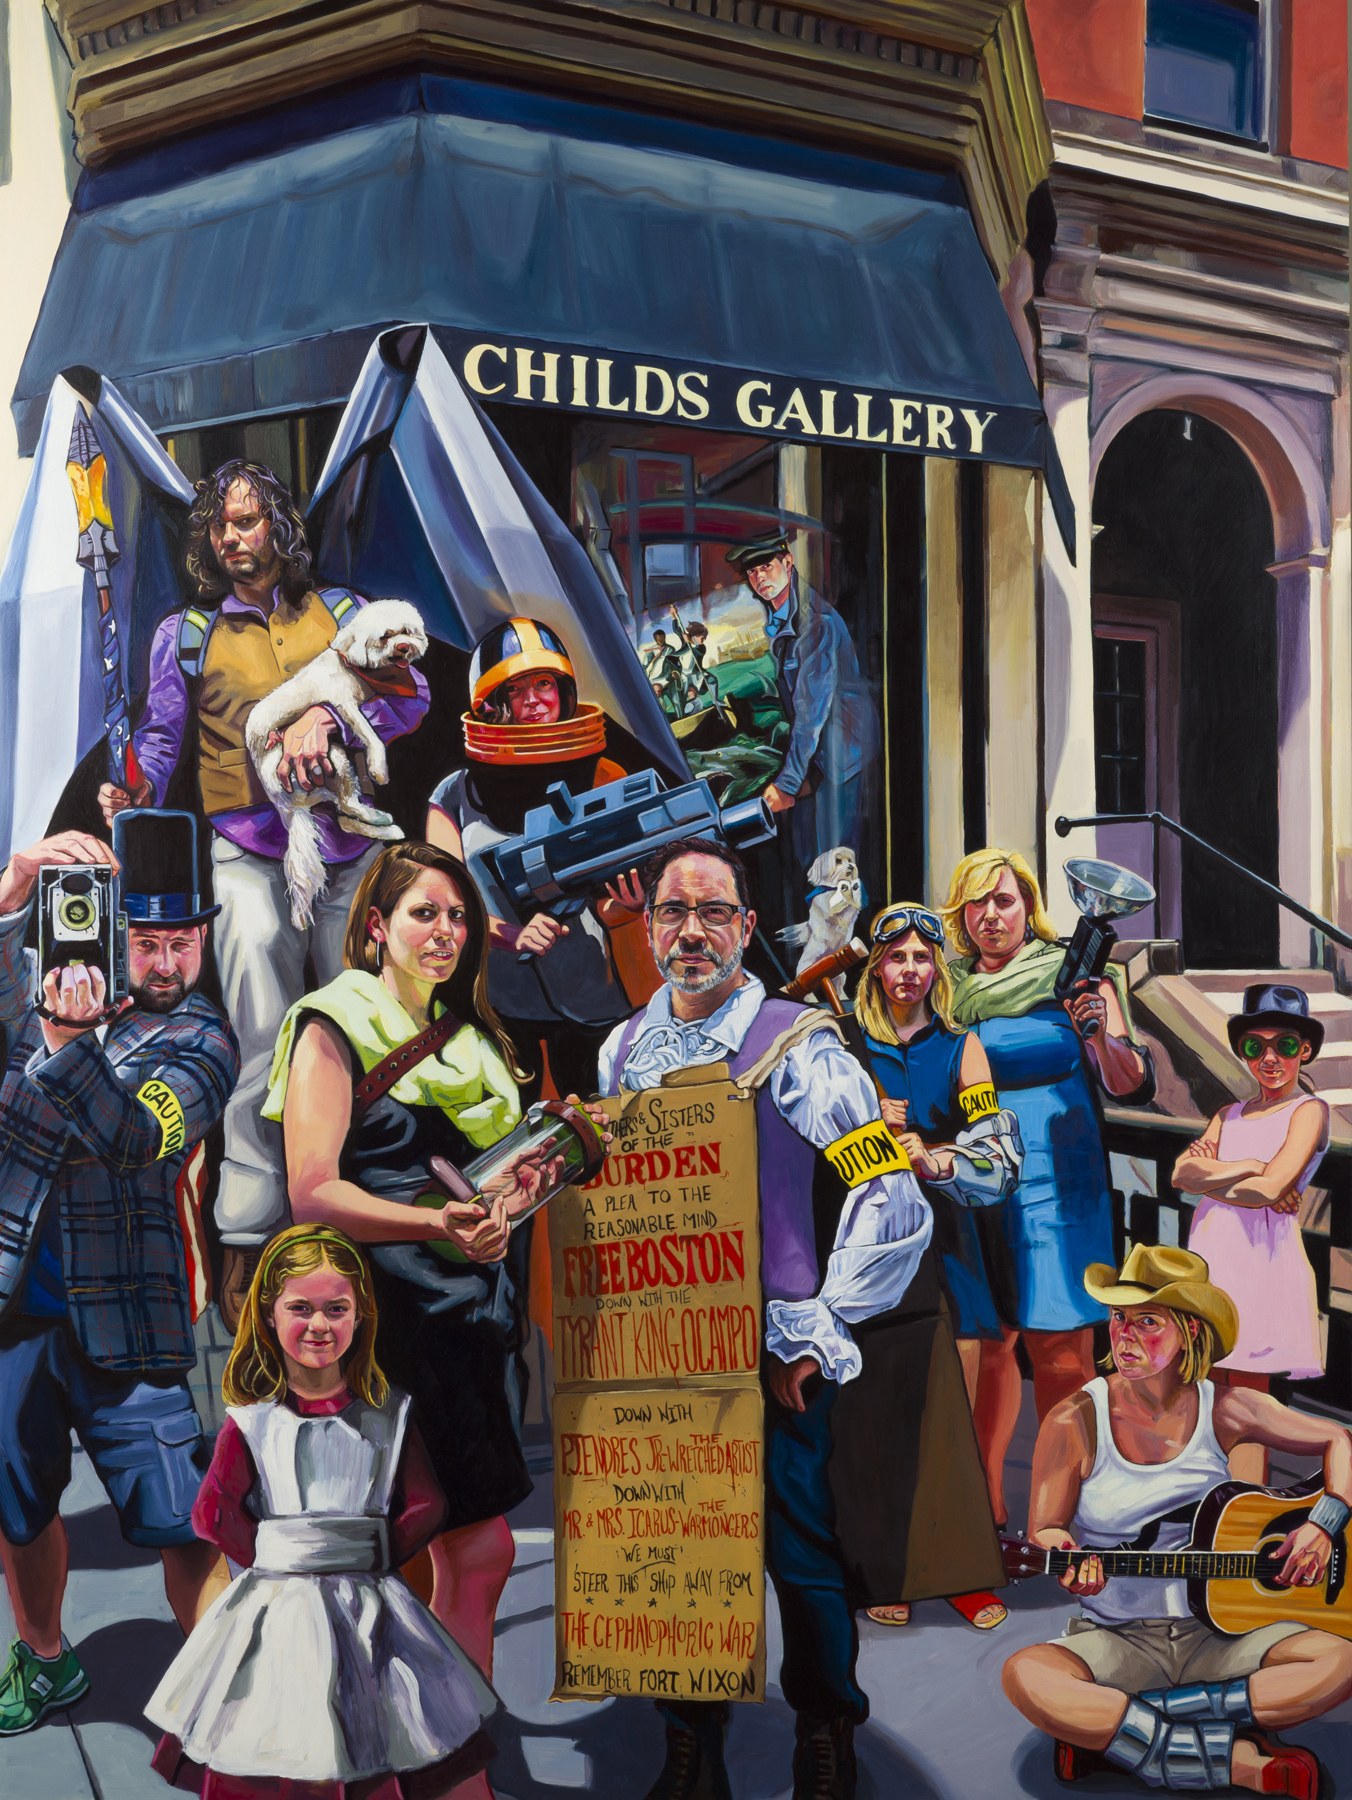 "Childs Gallery and the Great Aquinas Gambit, 48"" x 36"" Oil on Panel, 2014"